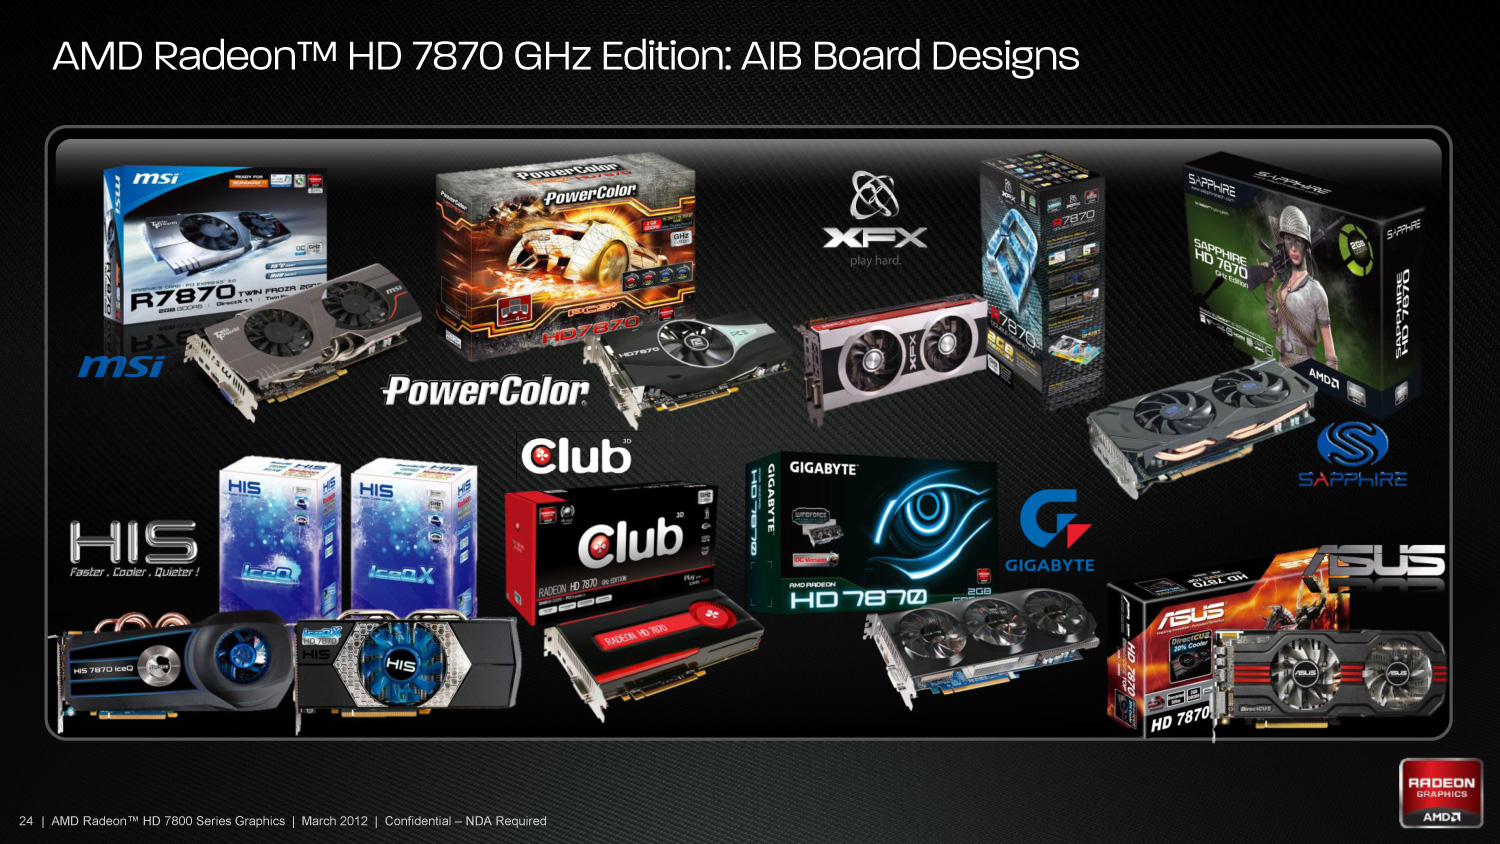 Amd Radeon Hd 7850 7870 265 270 270x Pitcairn Curacao Vehicle Electrical Center 1gif 15683 Bytes Http Imagesanandtechcom Doci 5625 7870partners